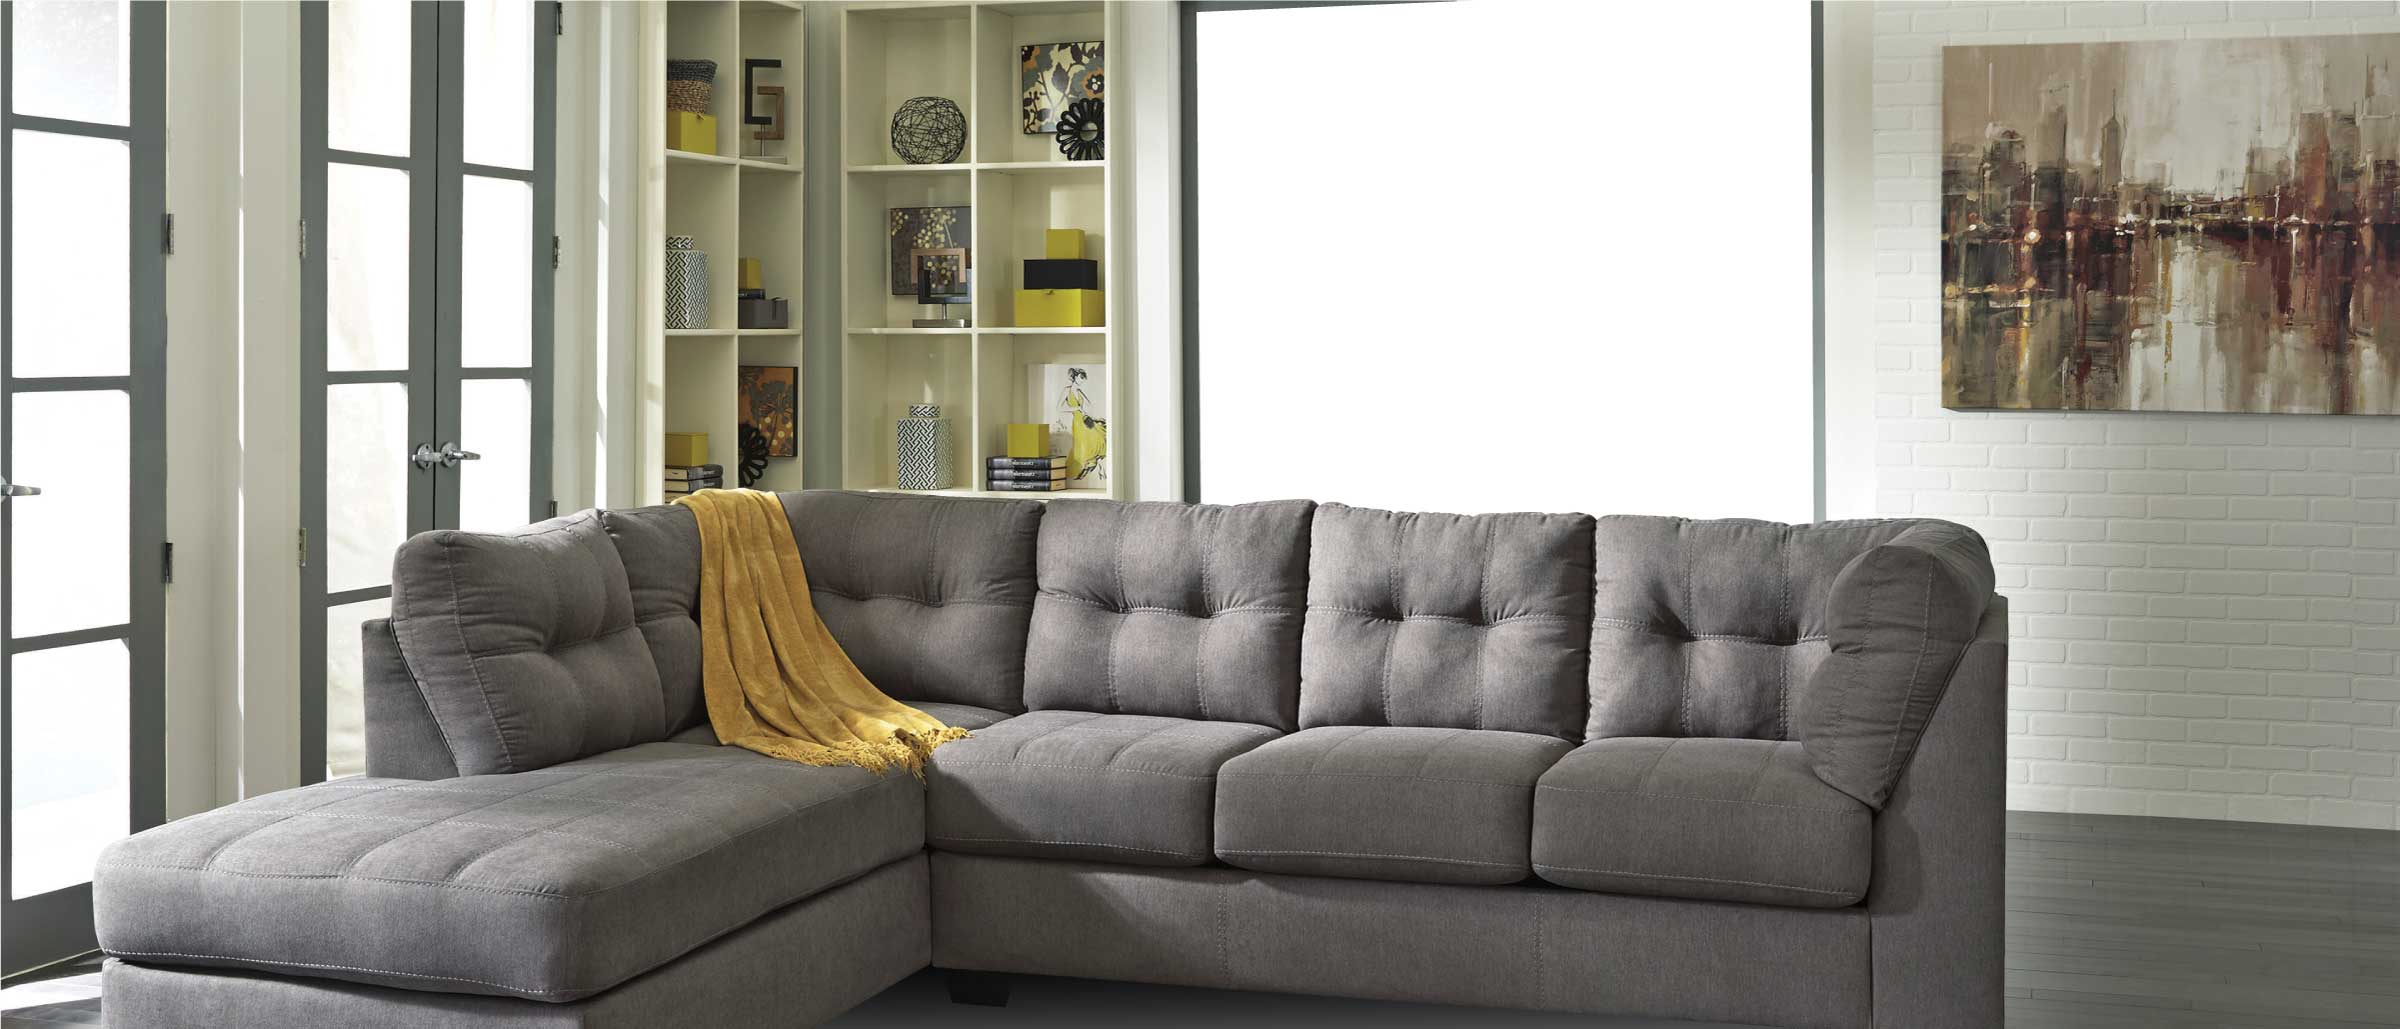 Contemporary grey sectional with tufted back and yellow throw in a living room with a brick wall